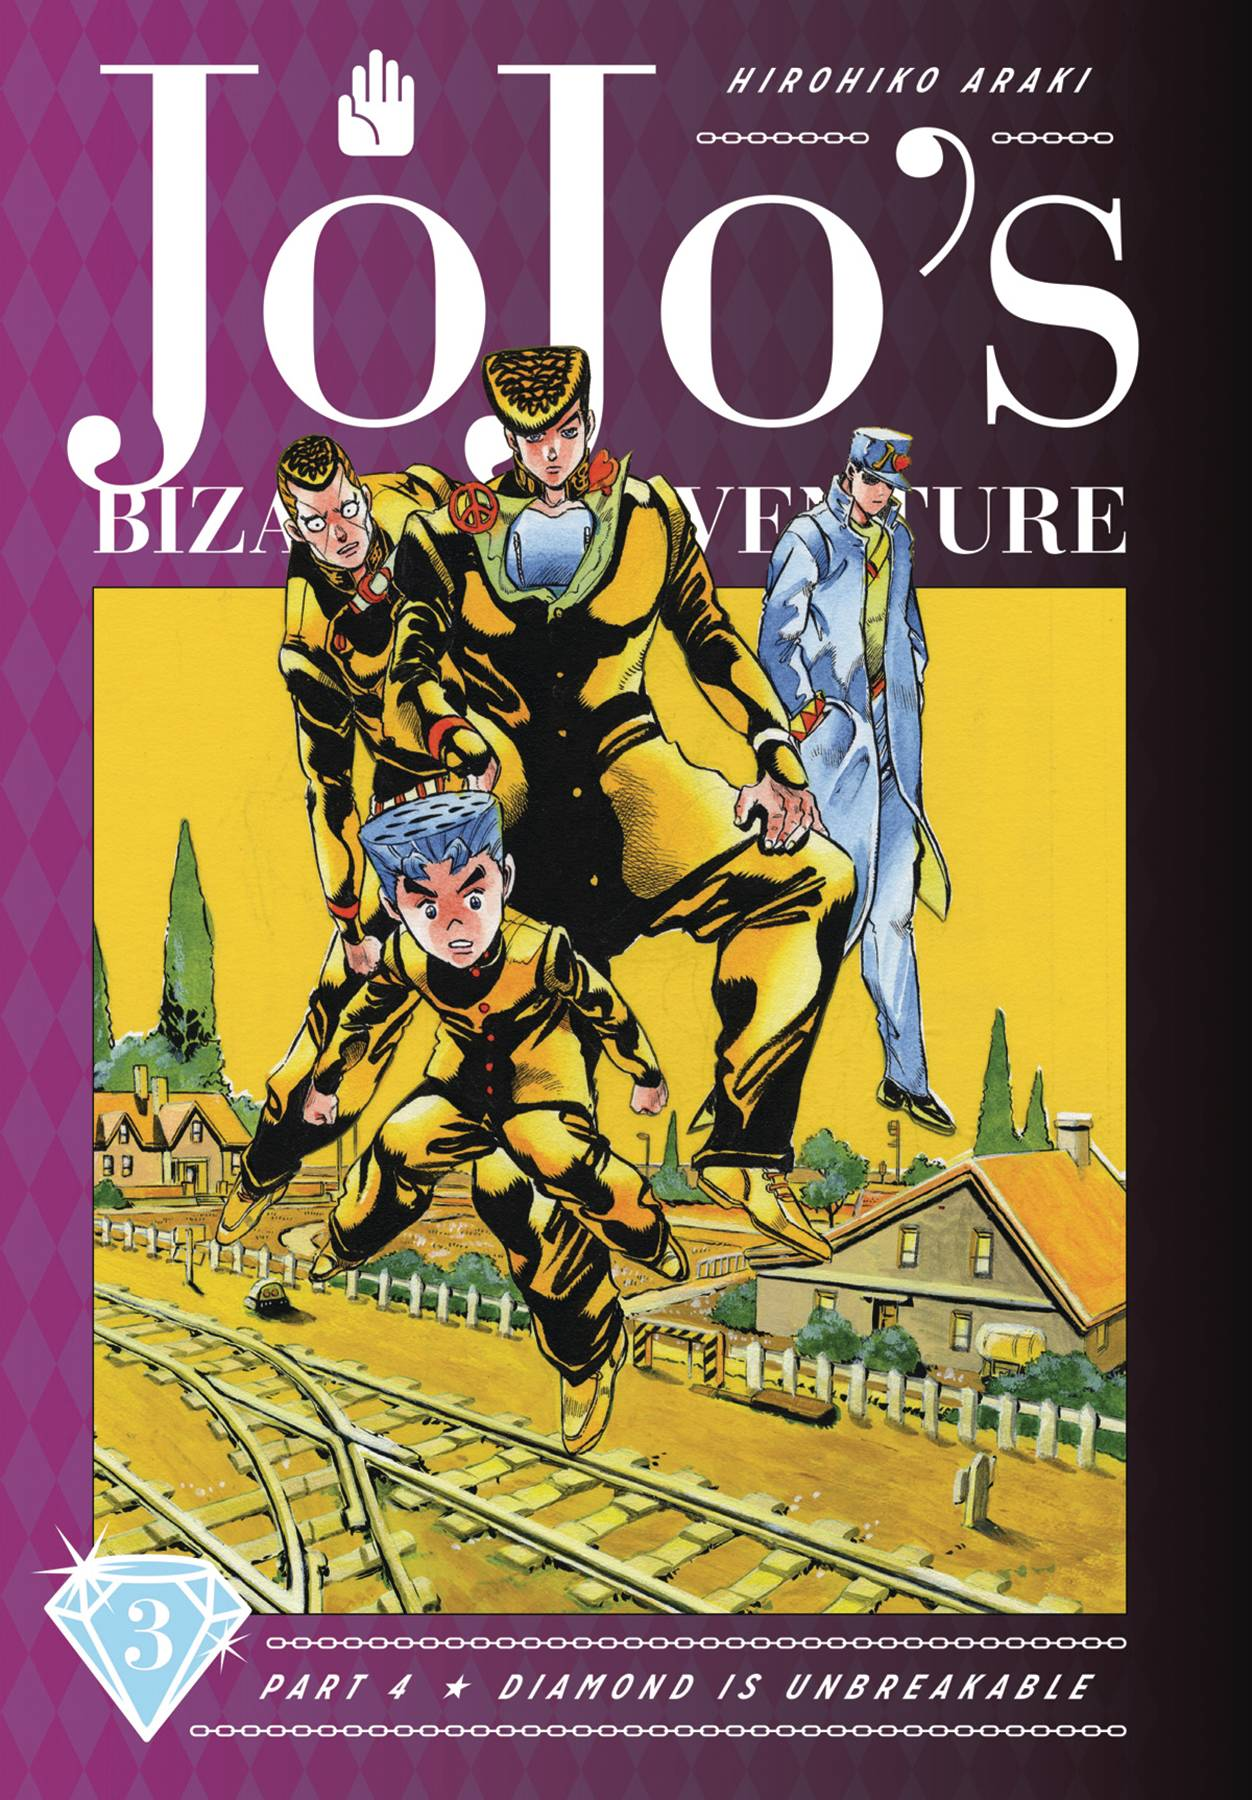 JOJOS BIZARRE ADV 4 DIAMOND IS UNBREAKABLE HC VOL 03